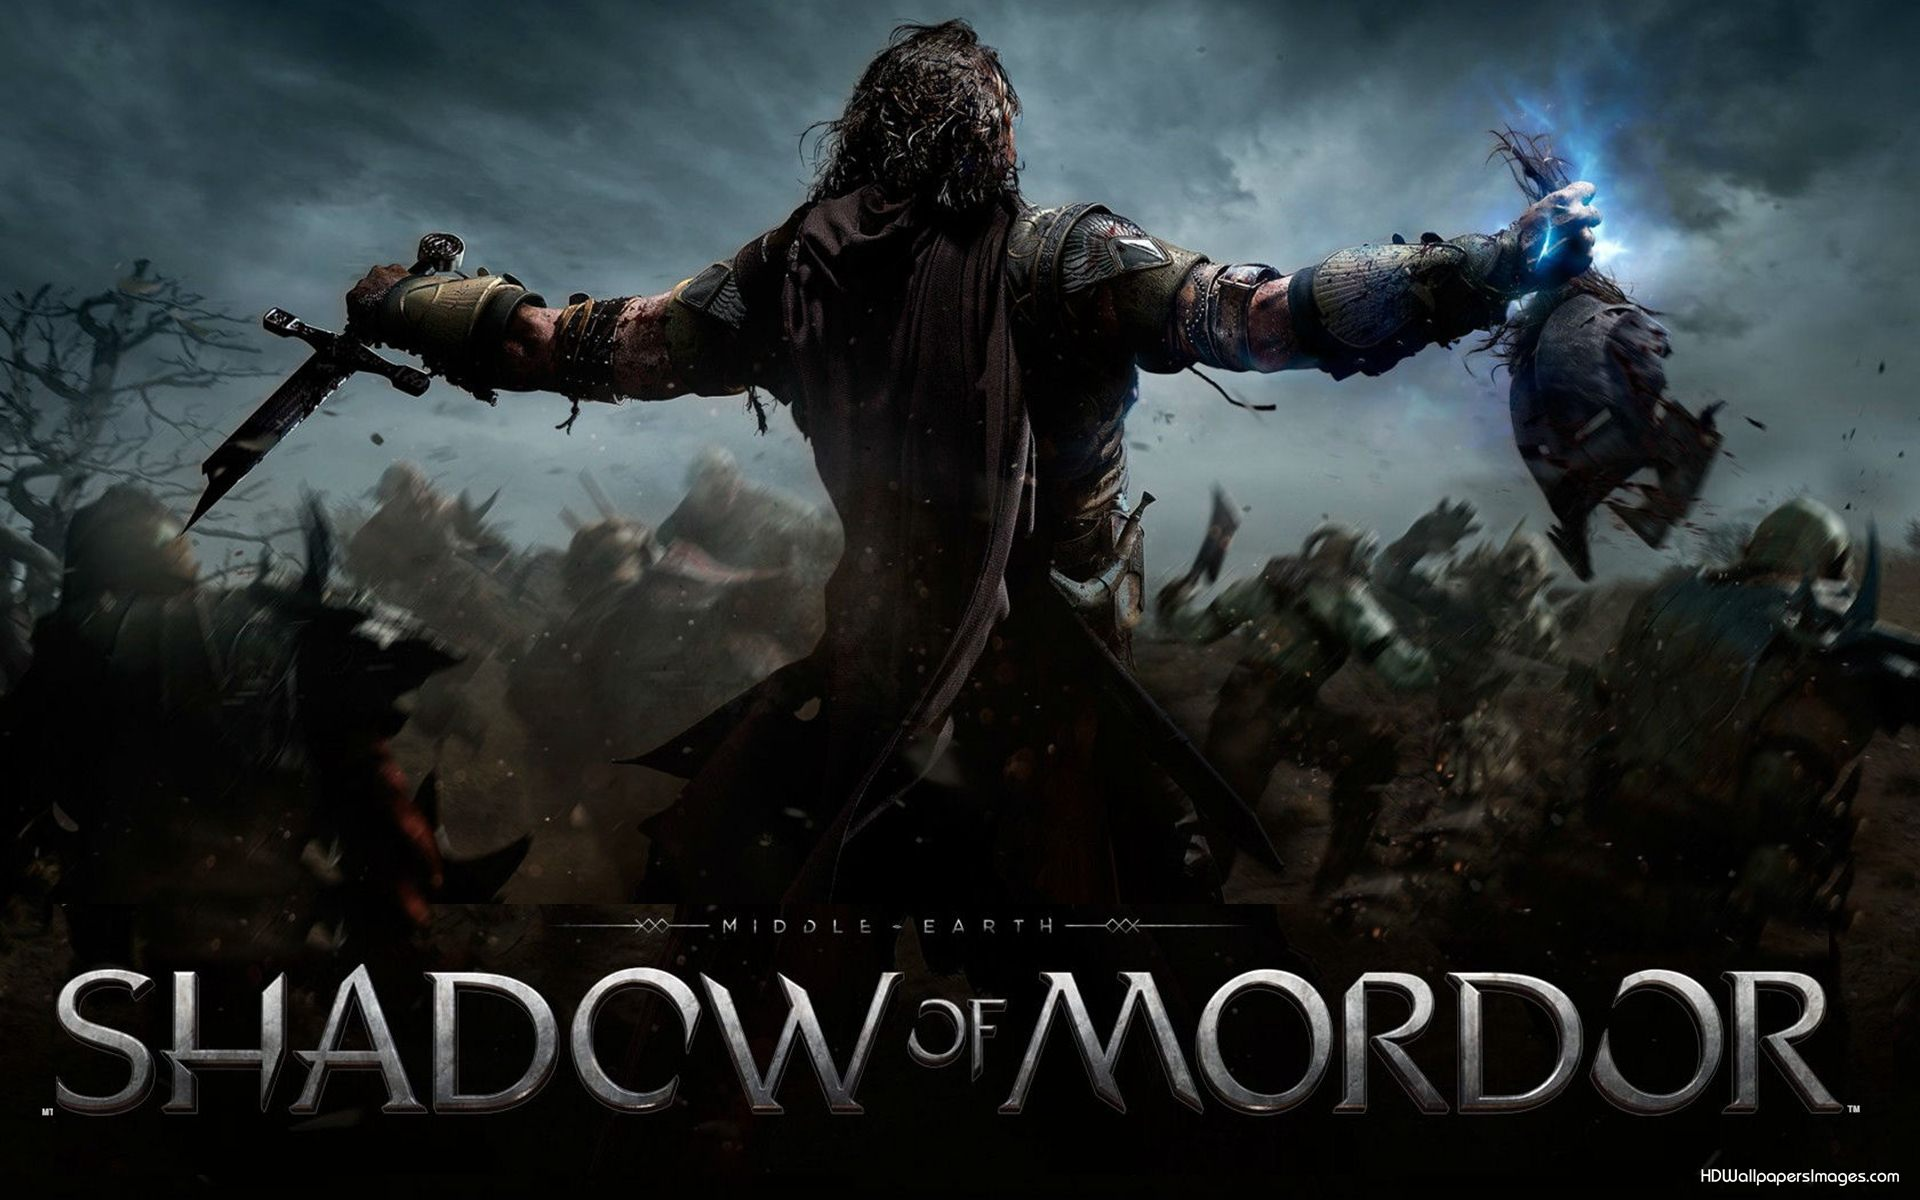 [PC] Обзор Middle-Earth: Shadow of Mordor. - Изображение 1